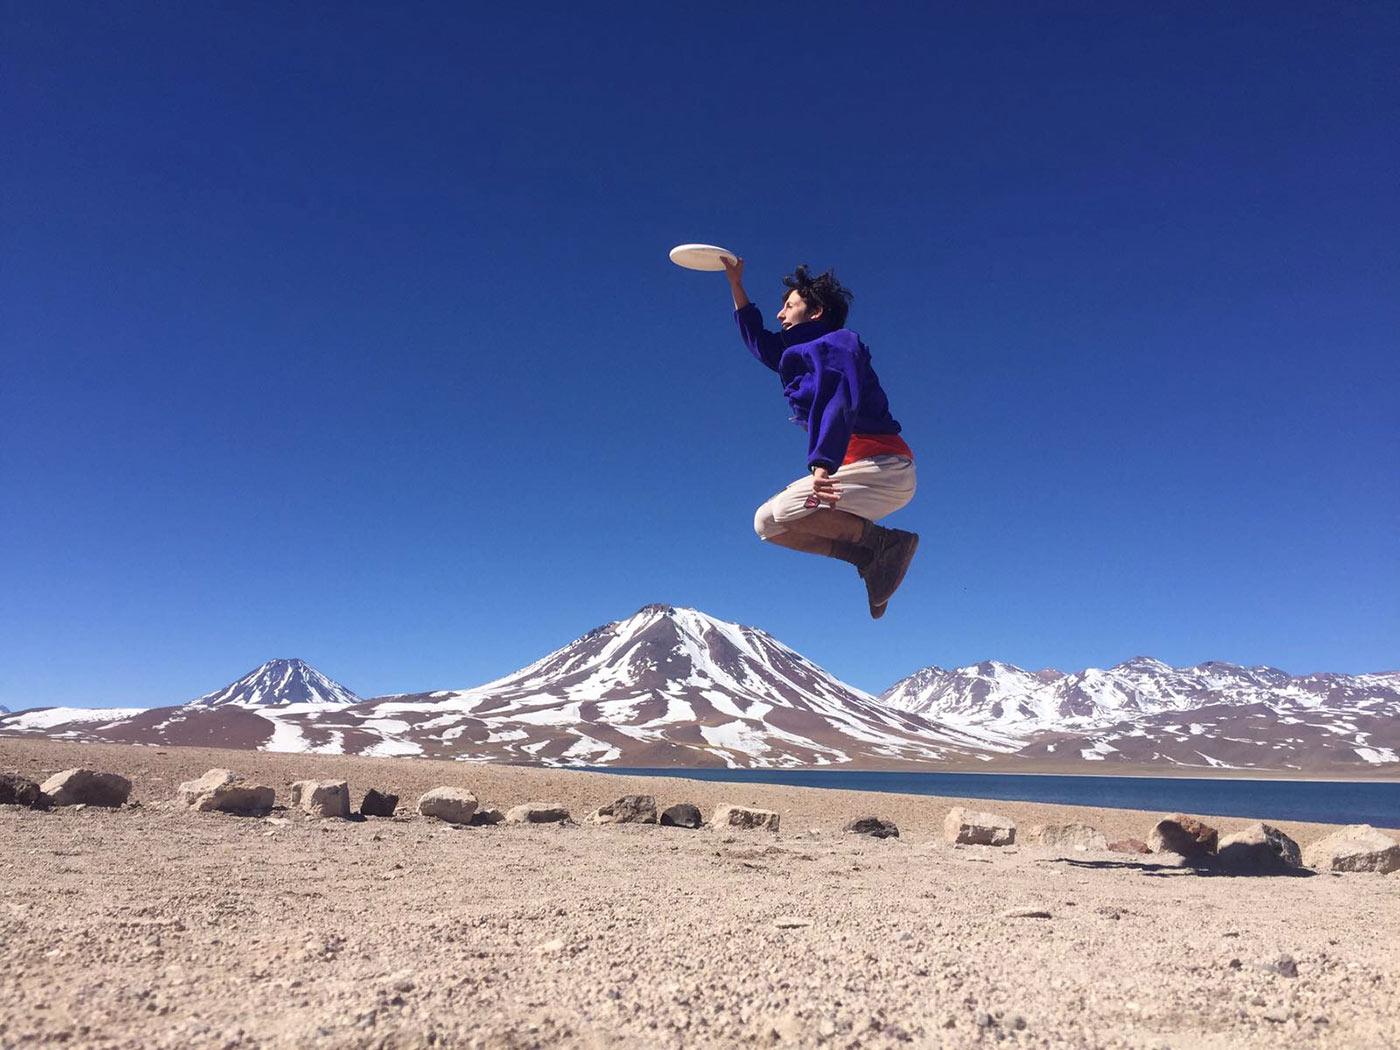 Man jumping in the air catching a frisbee with mountains in the background.